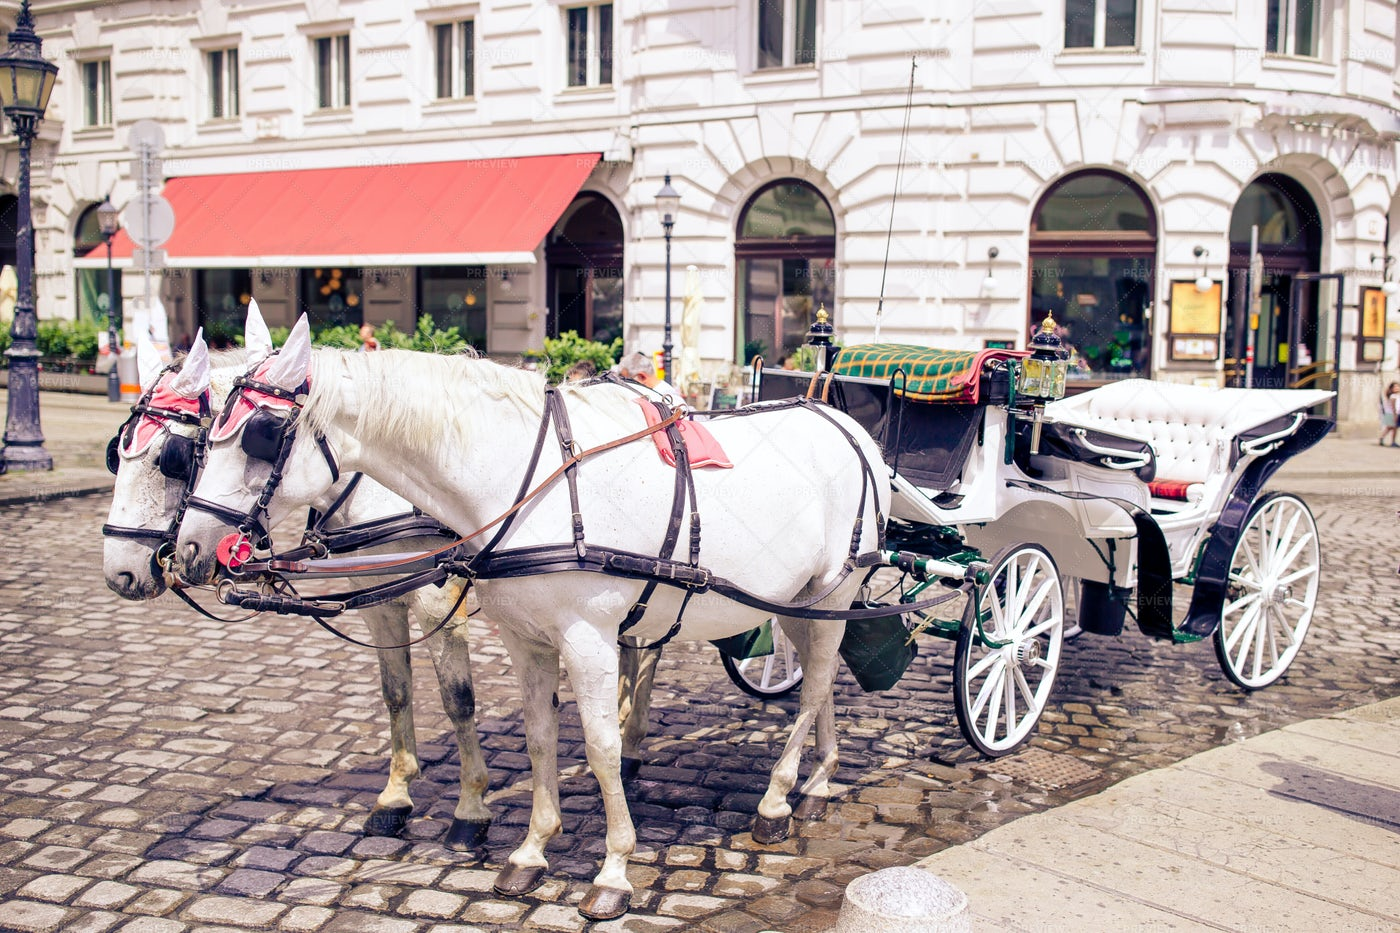 Horse And Carriage In Vienna: Stock Photos